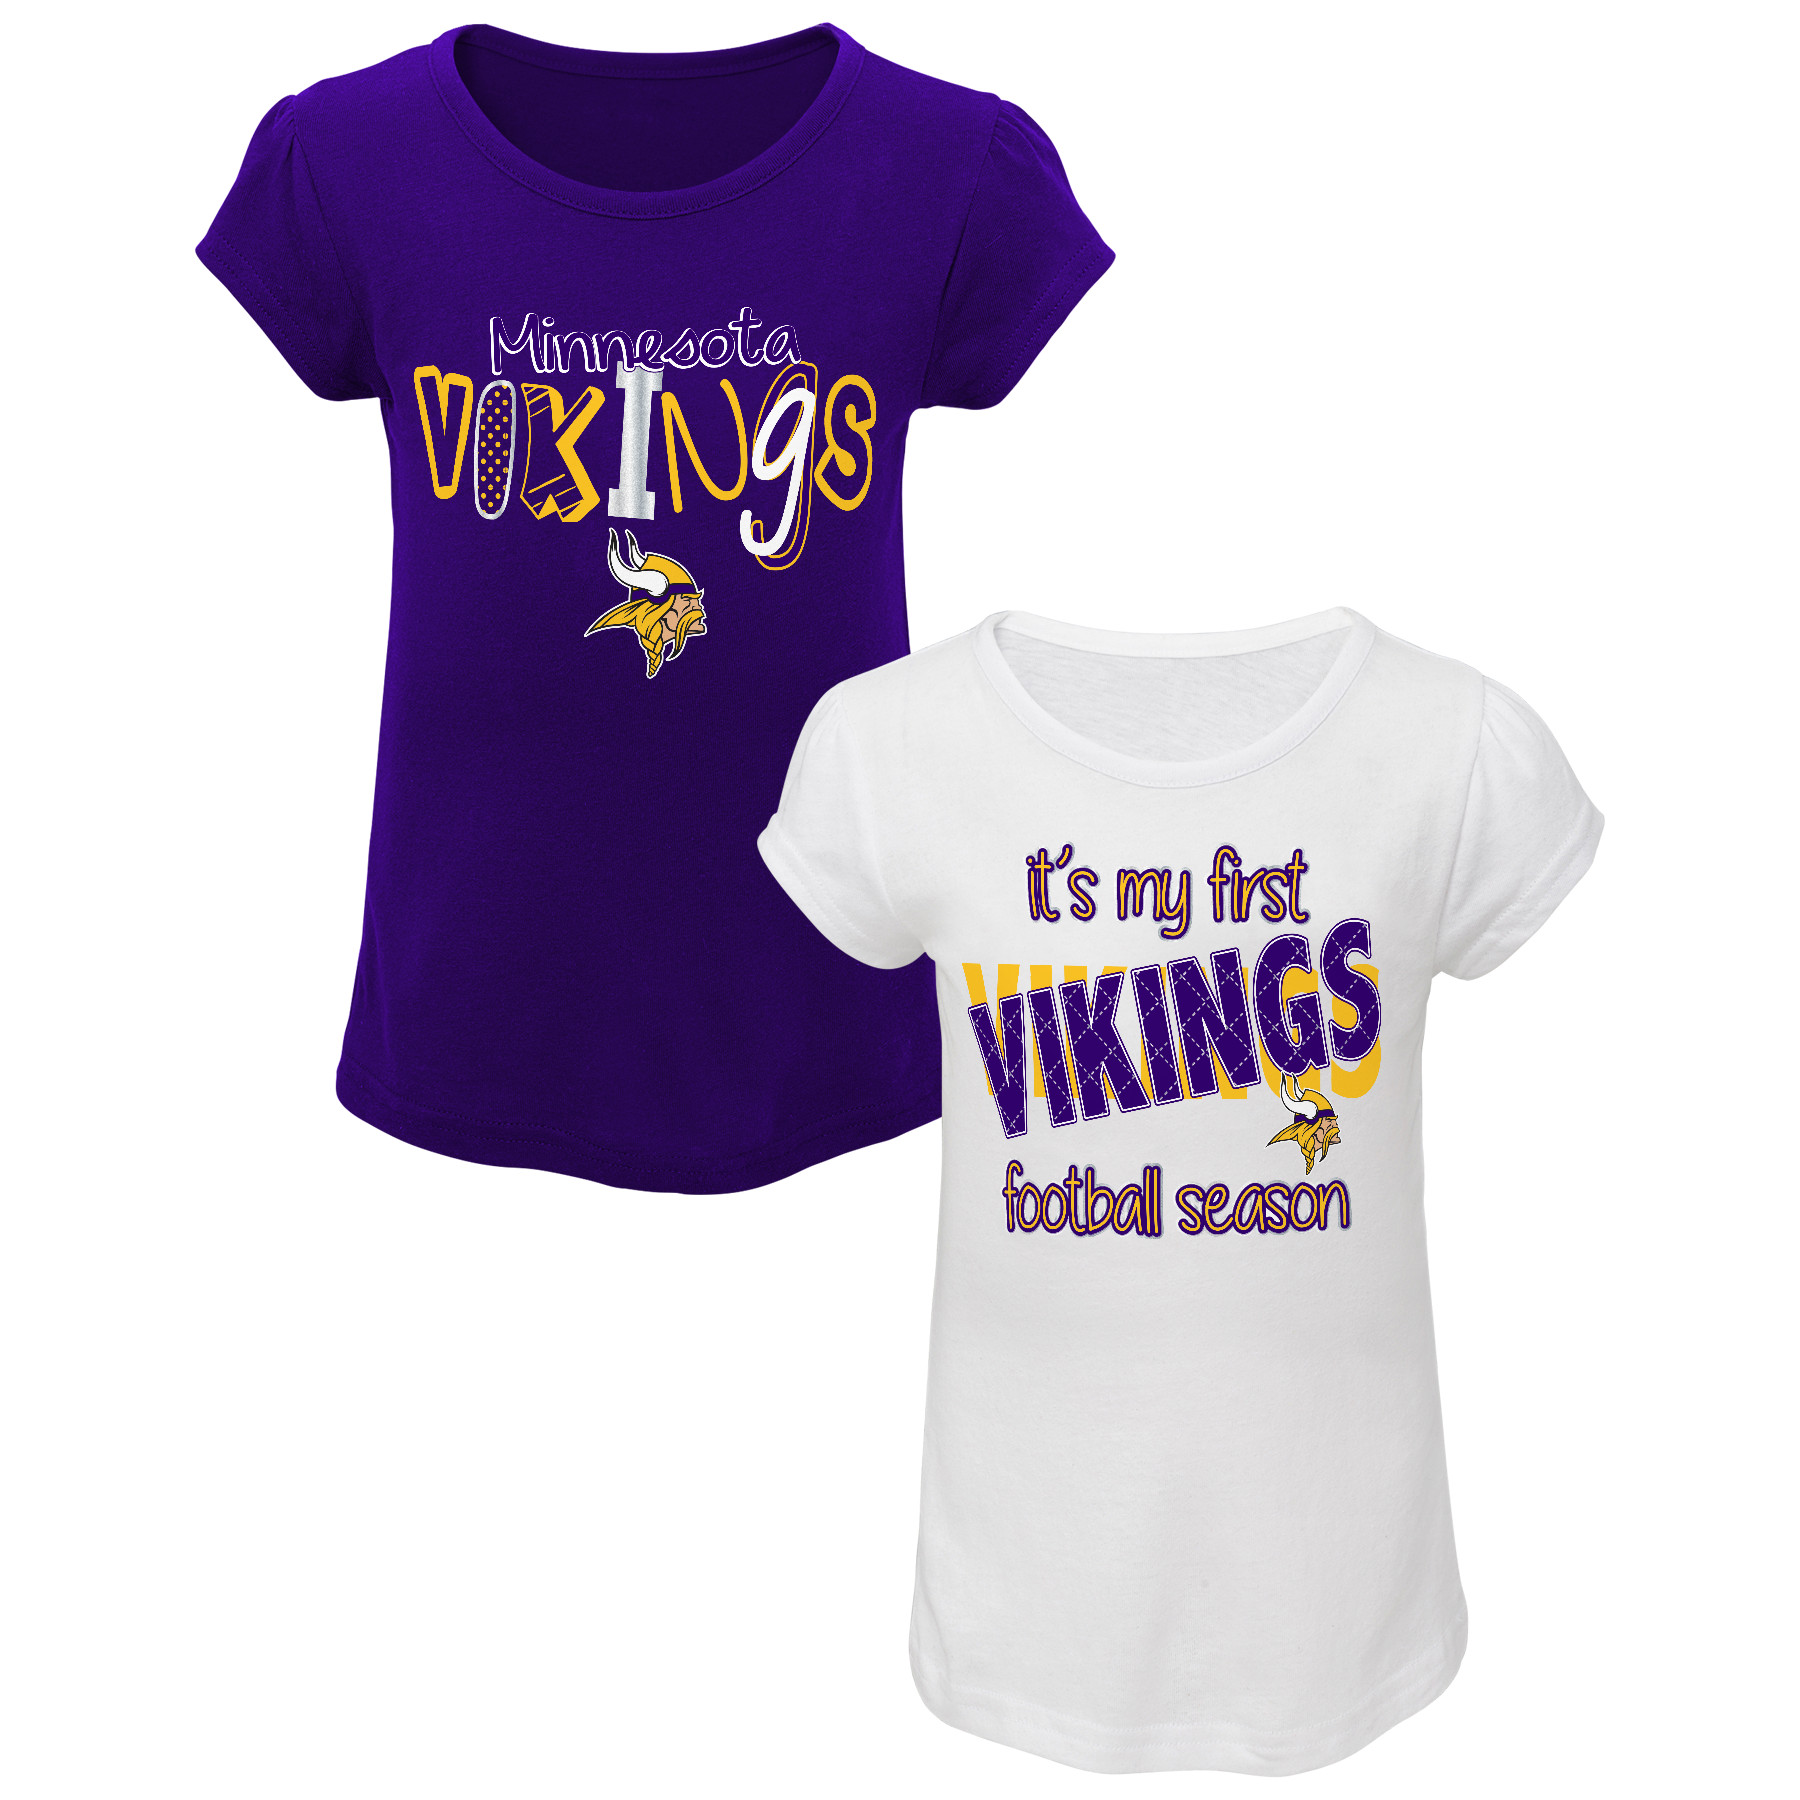 NFL Toddler Girls' 2-Pack Graphic T-shirts - Minnesota Vikings PartNumber: 046VA99068112P MfgPartNumber: 14AUZ-13